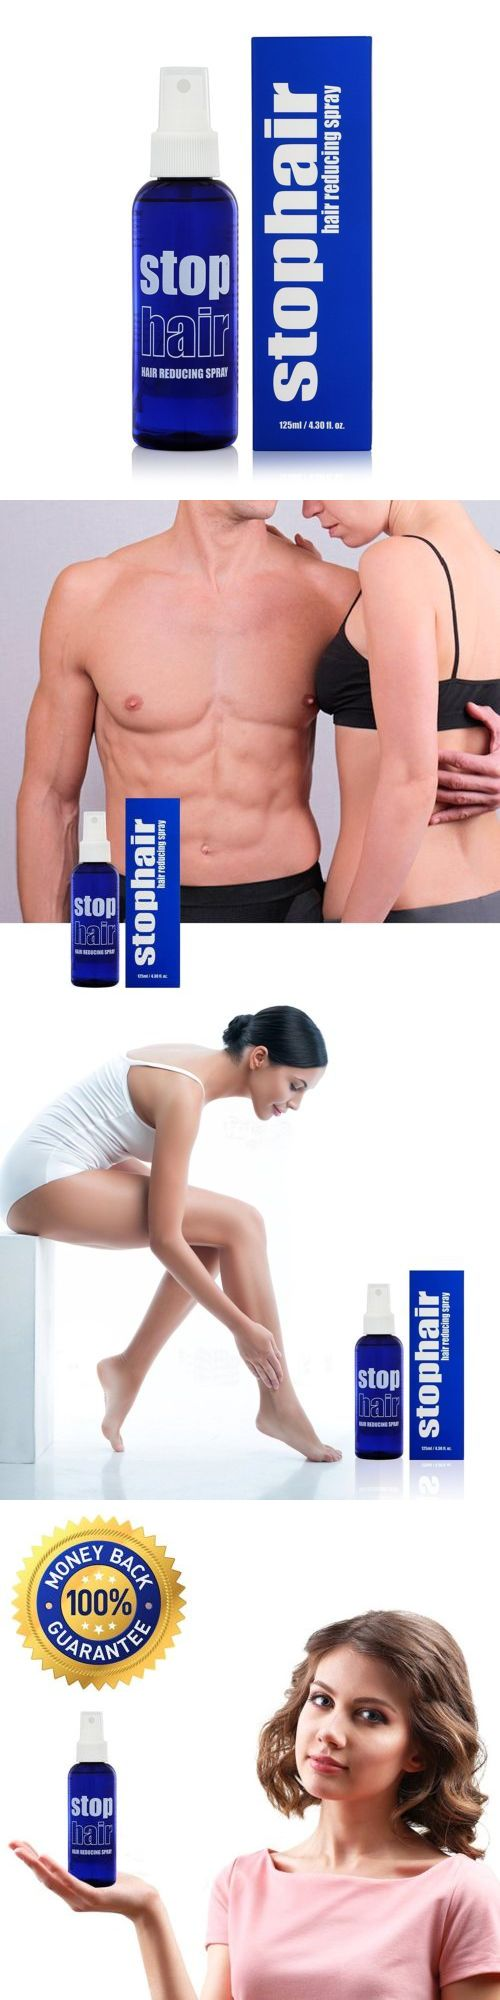 Hair Removal Creams and Sprays: Natural Hair Growth Inhibitor Permanent Hair Removal Remove Inhibiting Smooth -> BUY IT NOW ONLY: $61.34 on eBay!